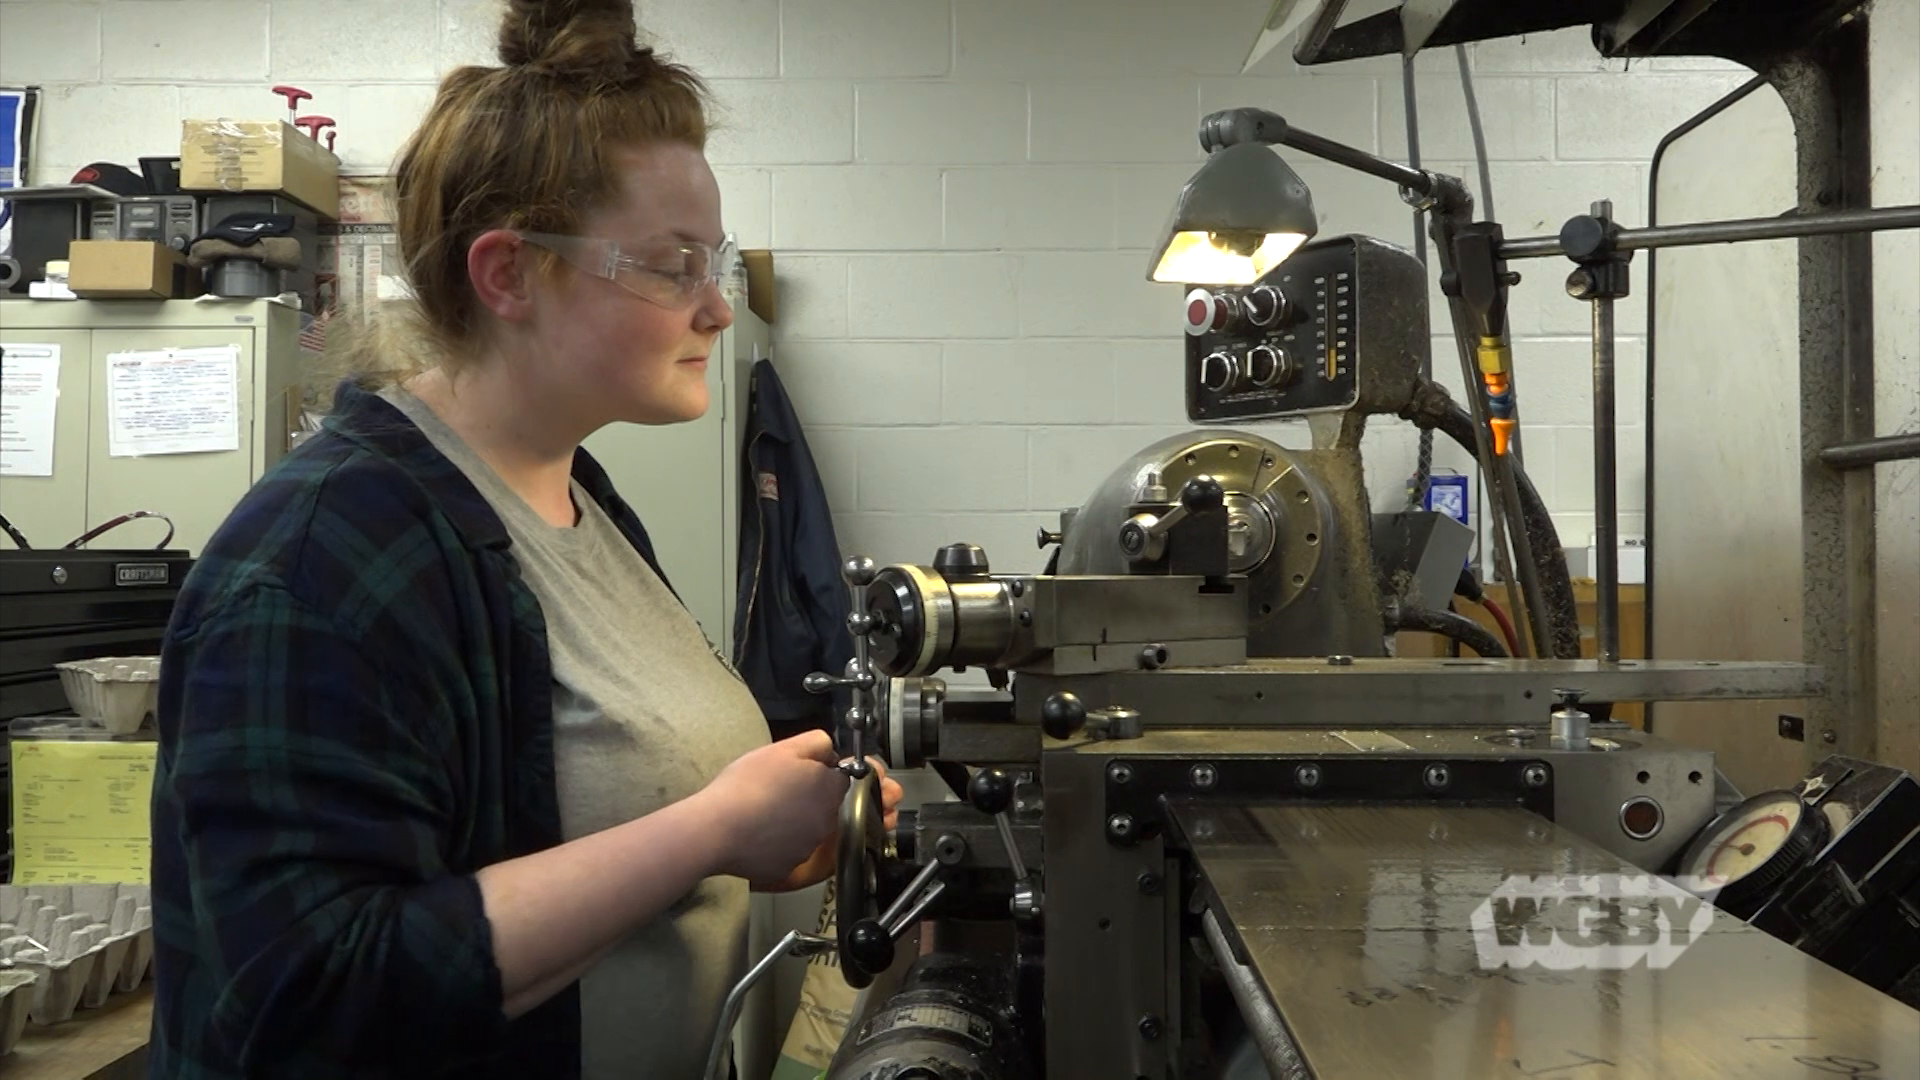 Western MA companies like Peerless Precision in Westfield & Advanced Welding in Springfield have job openings, but finding skilled workers is a challenge.